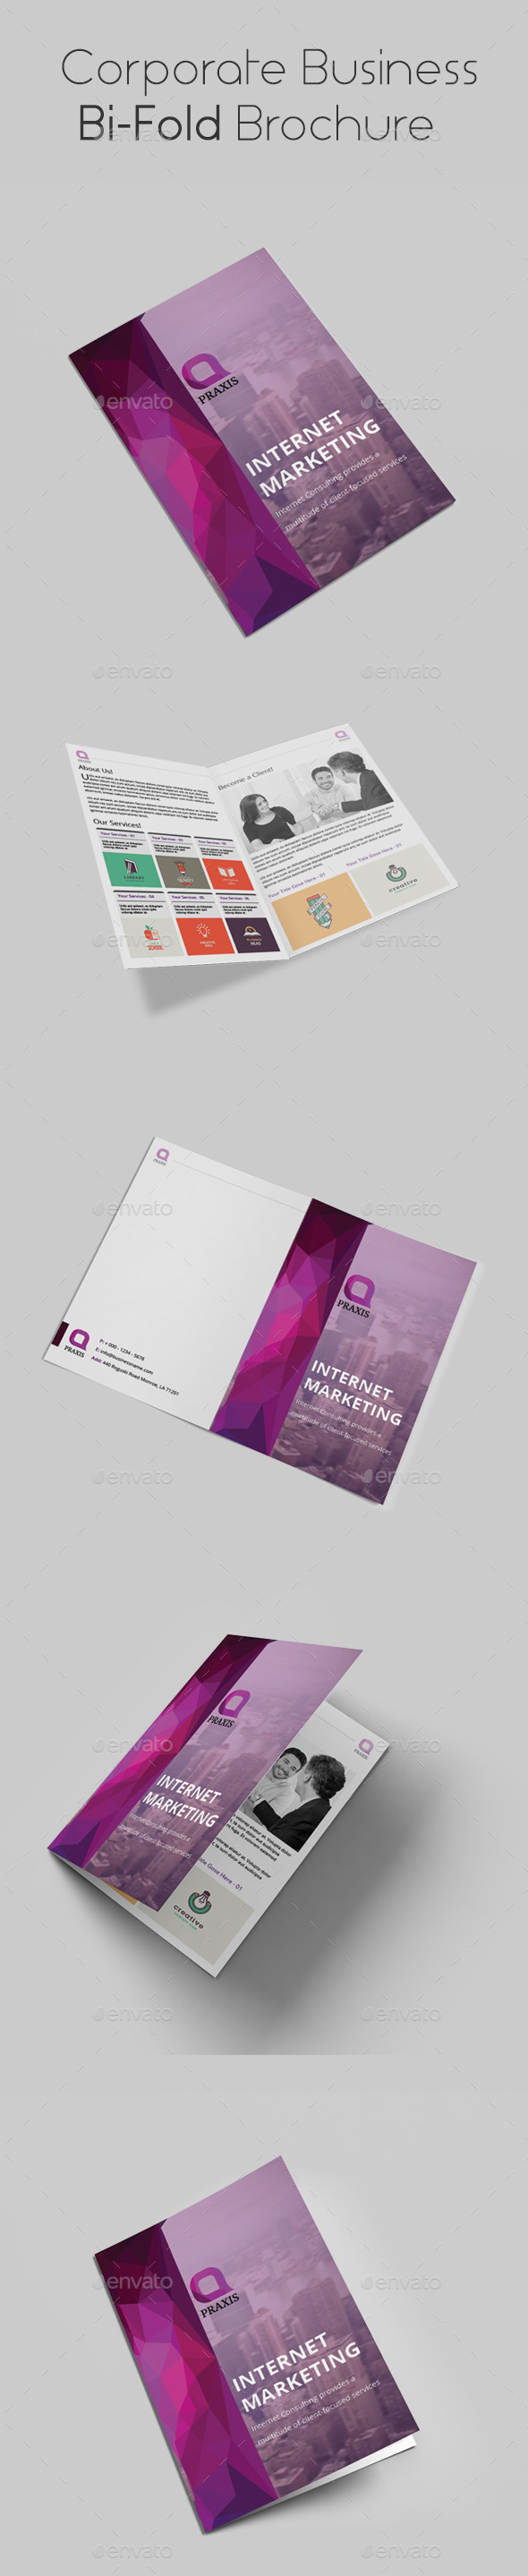 GraphicRiver Corporate Business Bi-Fold Brochure 10706431